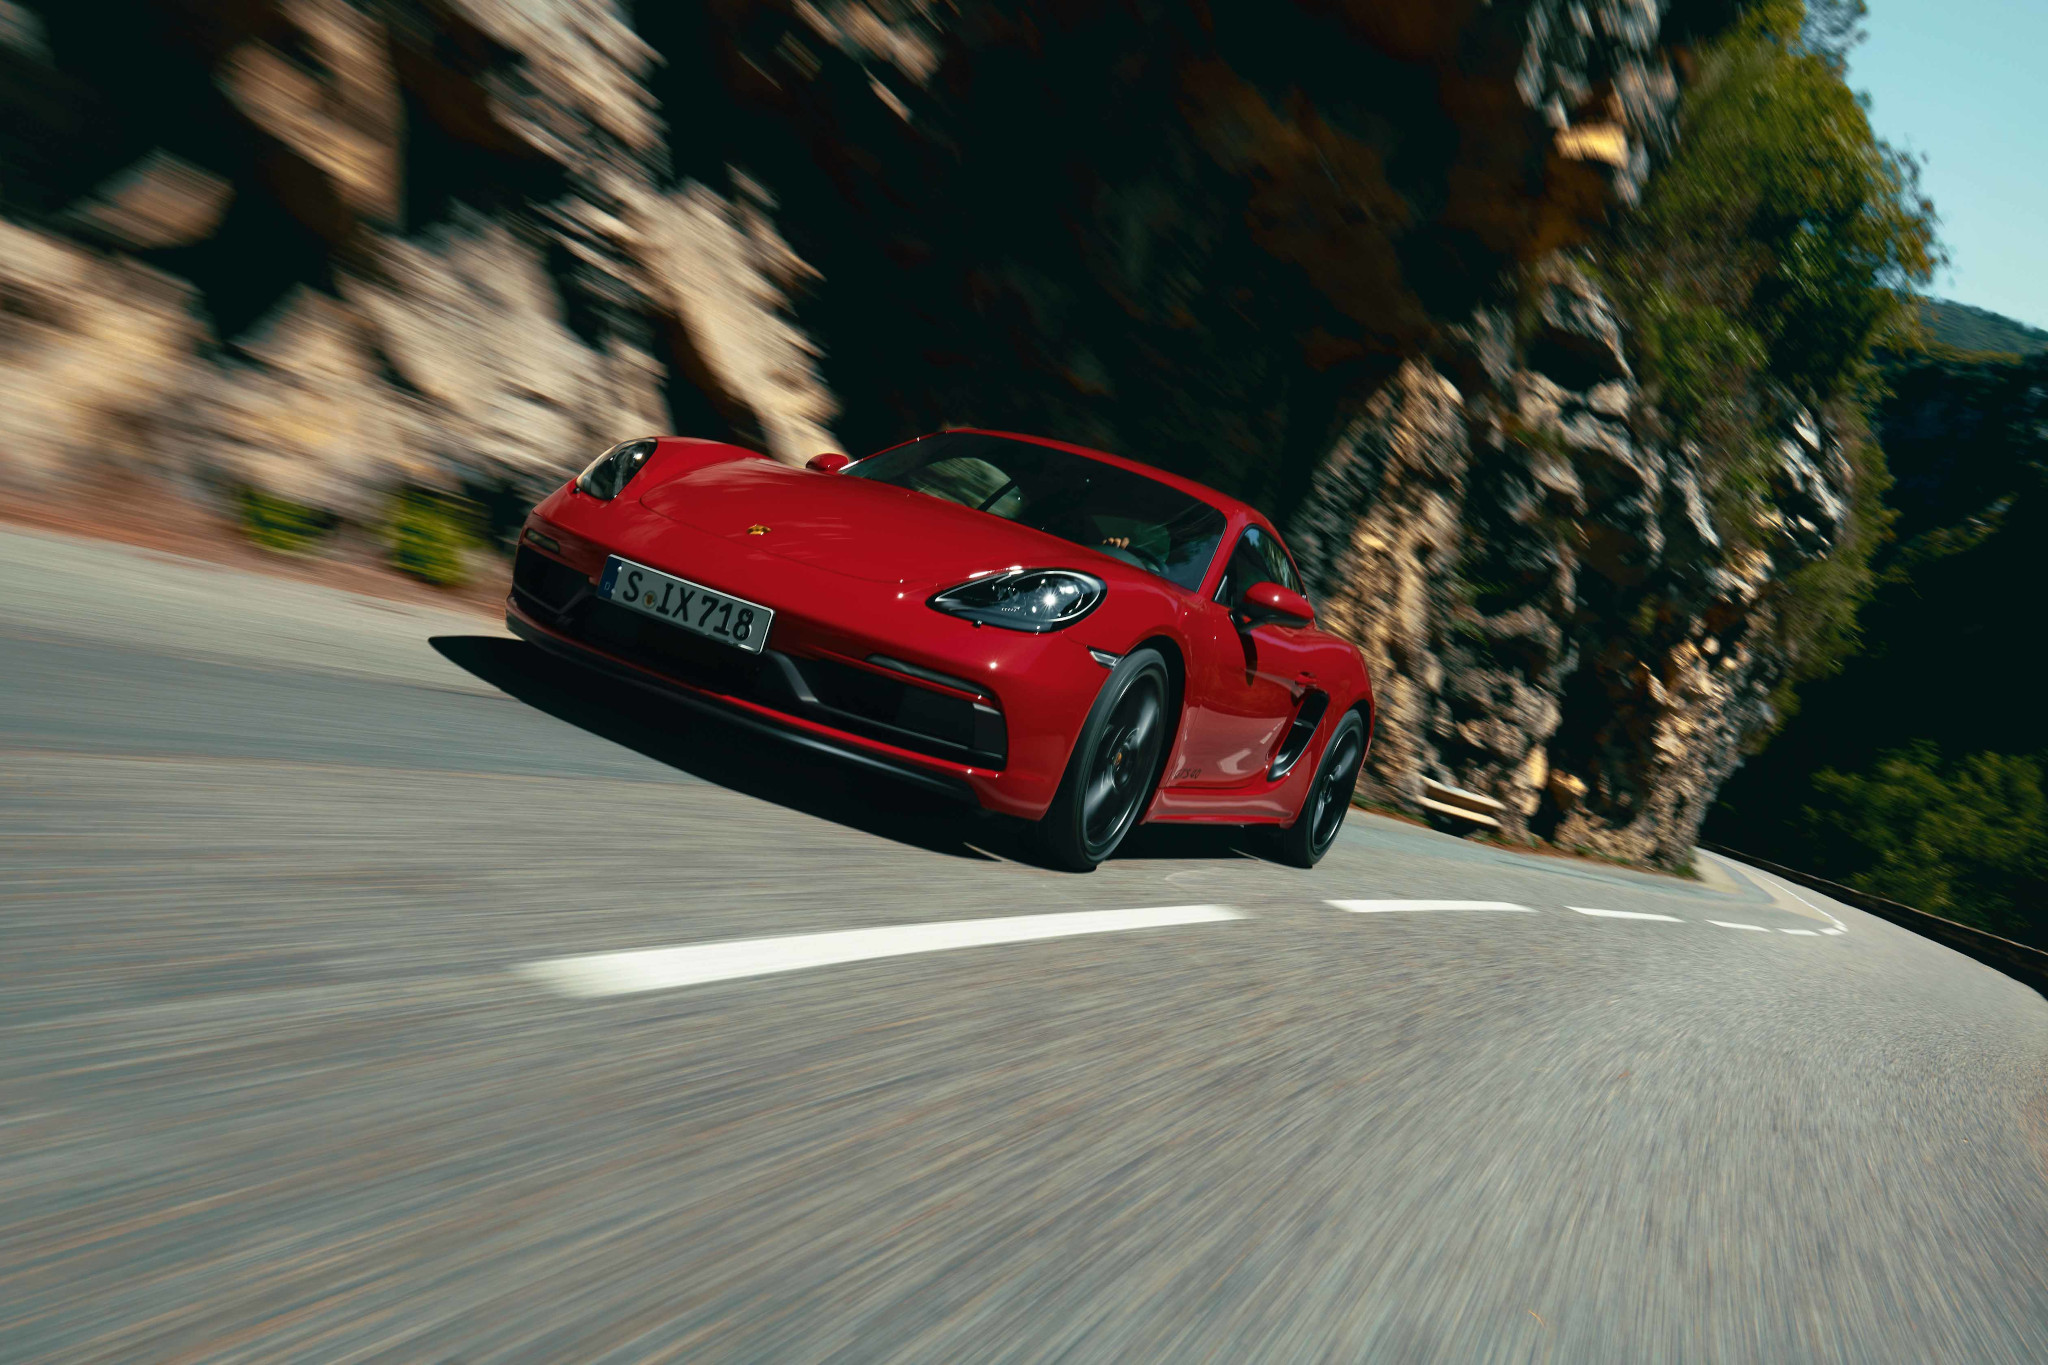 Porsche 718 GTS 4.0: You Make Me Feel Like a Natural Sports Car